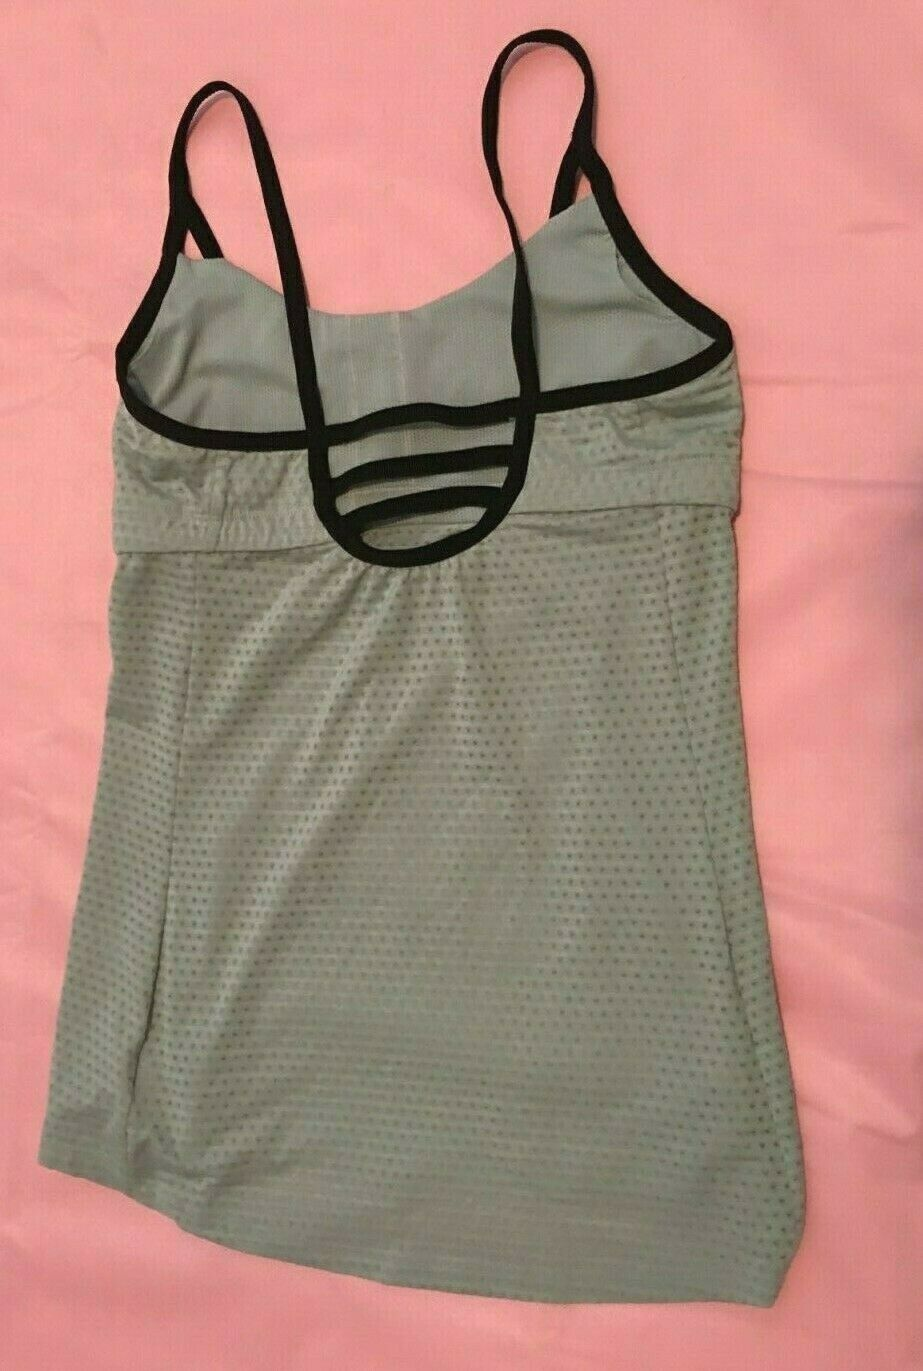 Athleta Workout Yoga Tank Top Light Gray size XS